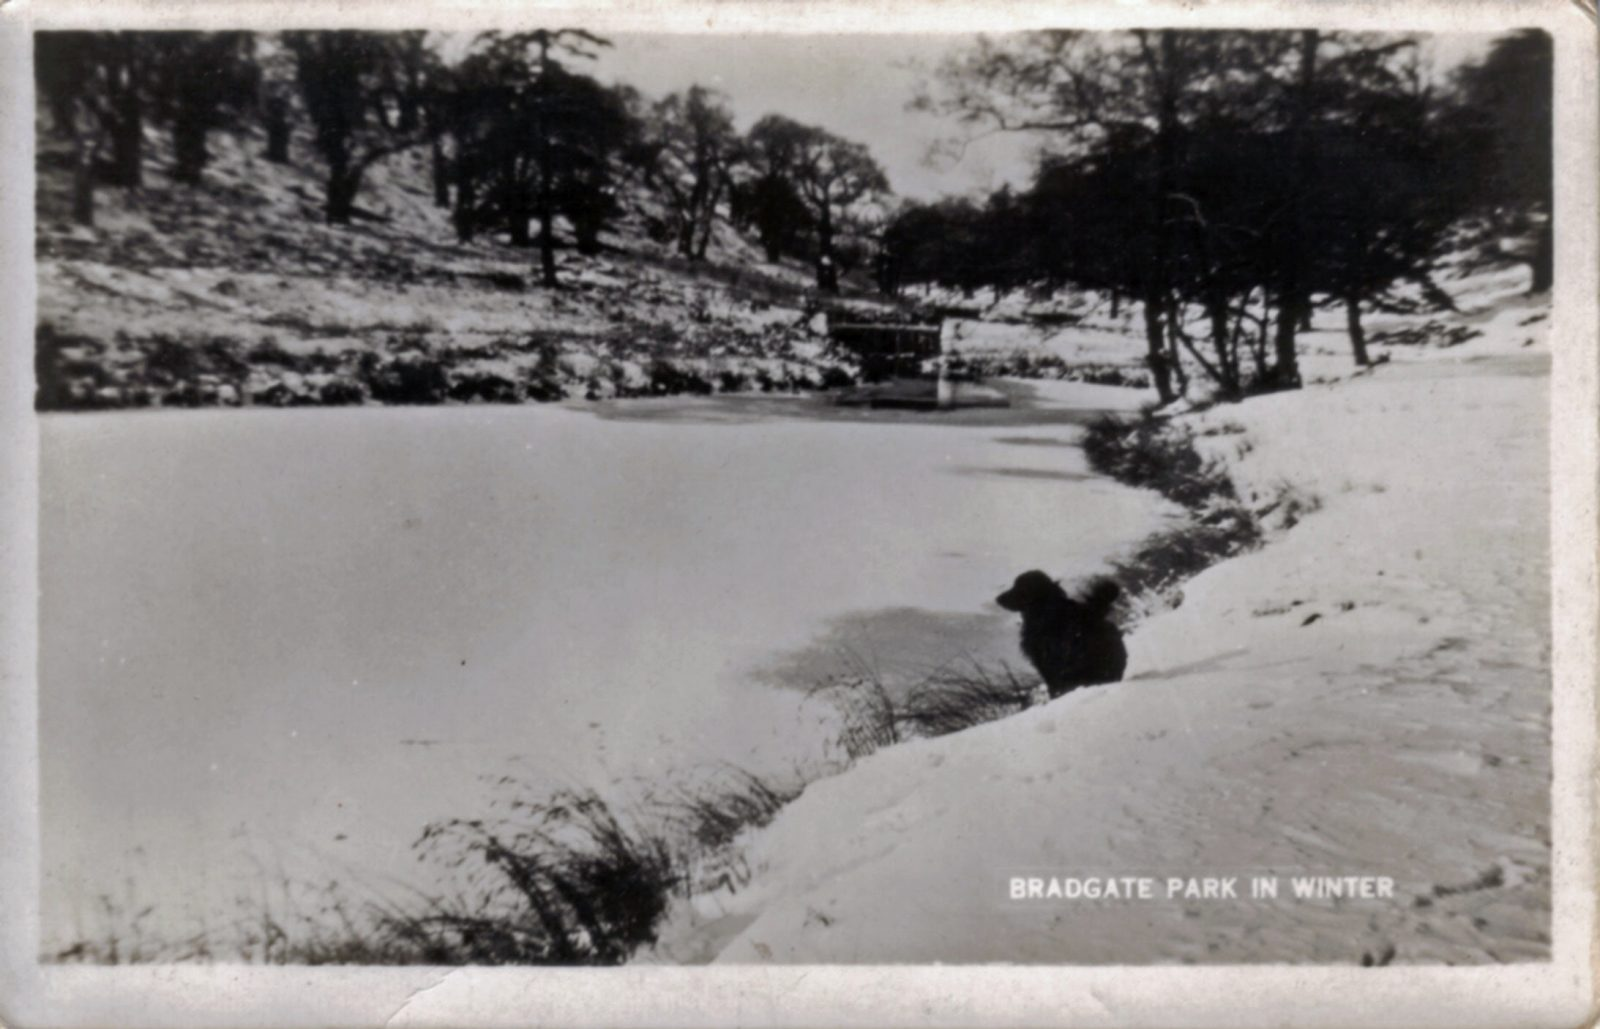 Bradgate Park, Leicester. Undated: The park in winter. Snow. Dog in foreground on riverbank. (File:1116)